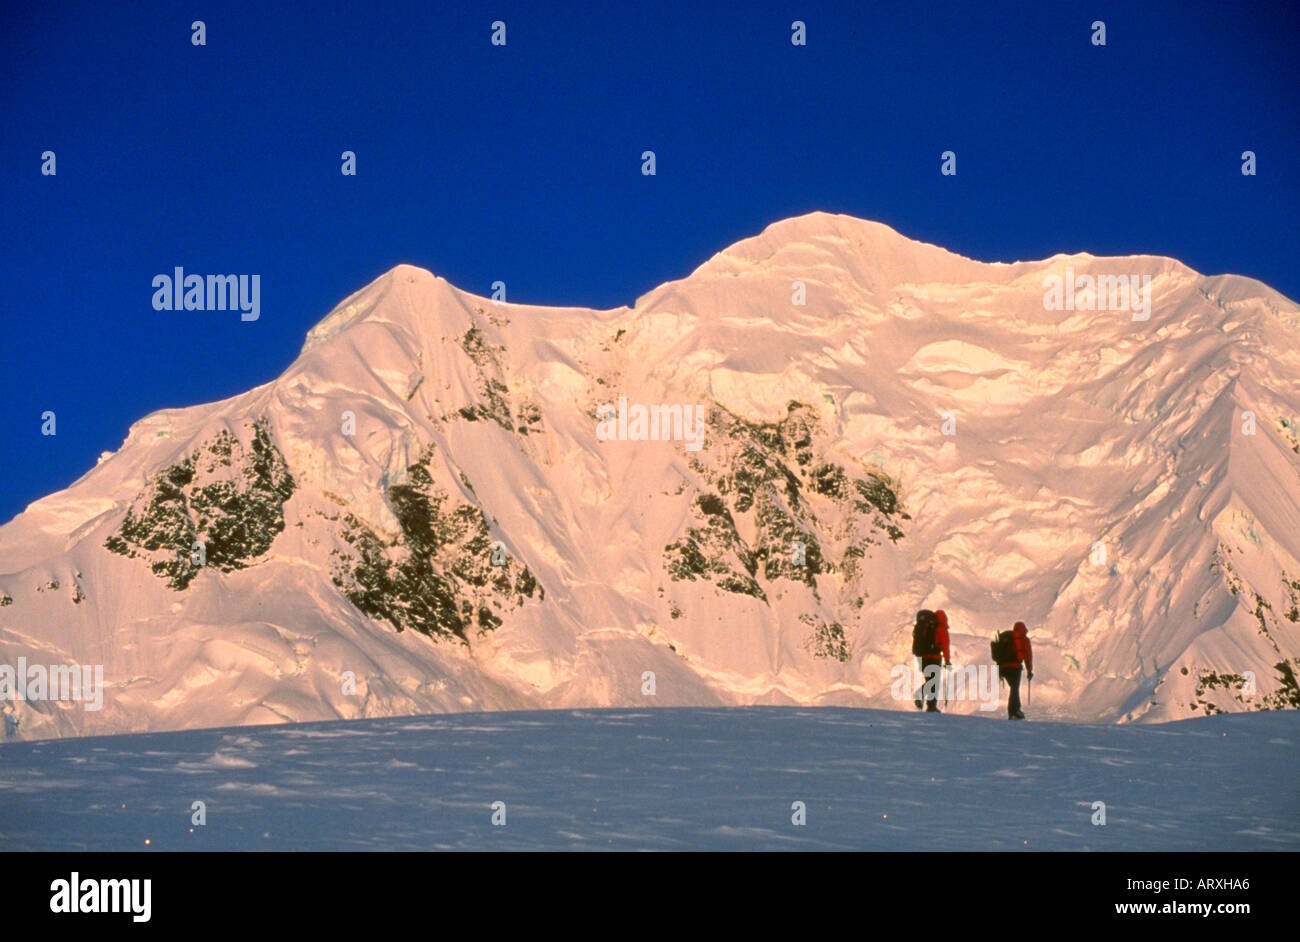 Mountaineering on the Grand Plateau Glacier with Mt Tasman in the background in Mt Cook National Park New Zealand - Stock Image